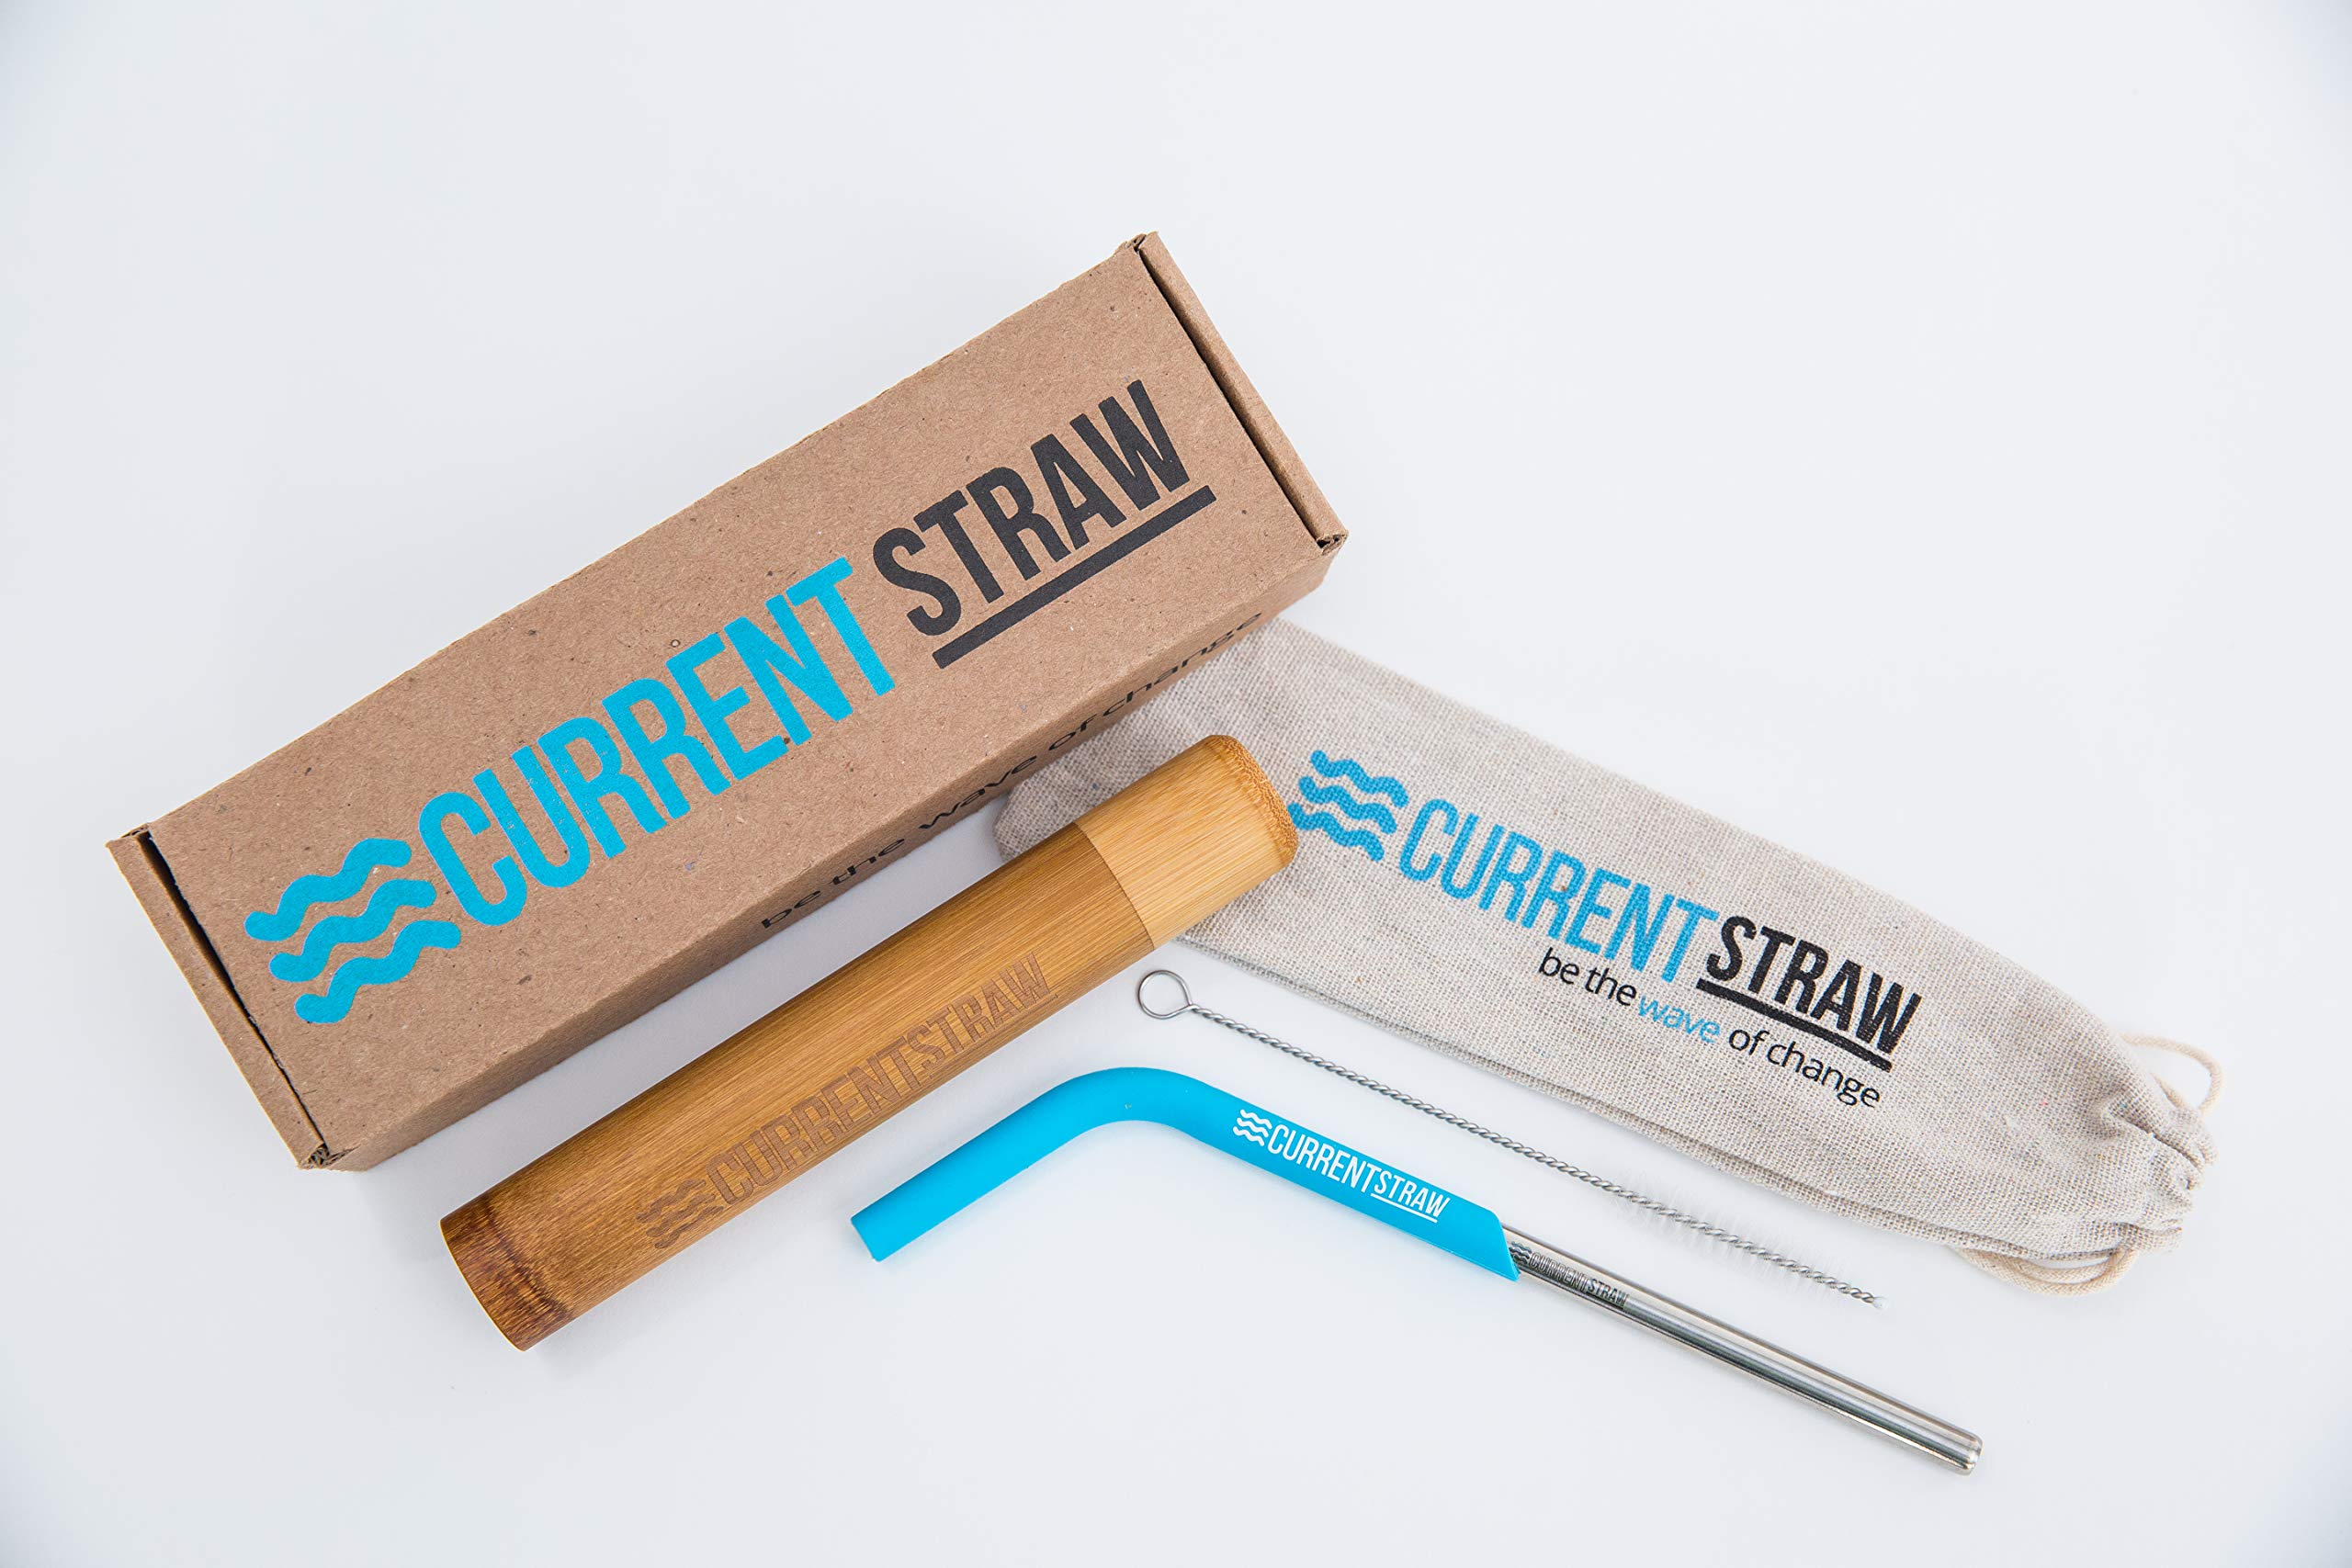 CurrentStraw - Single Pack - Eco-Friendly Reusable, Premium Stainless Steel Metal Drinking Straw with Custom Silicone Tip | Handcrafted Bamboo Travel Case & Stylish Pouch | Zero Waste | by CurrentStraw (Image #2)